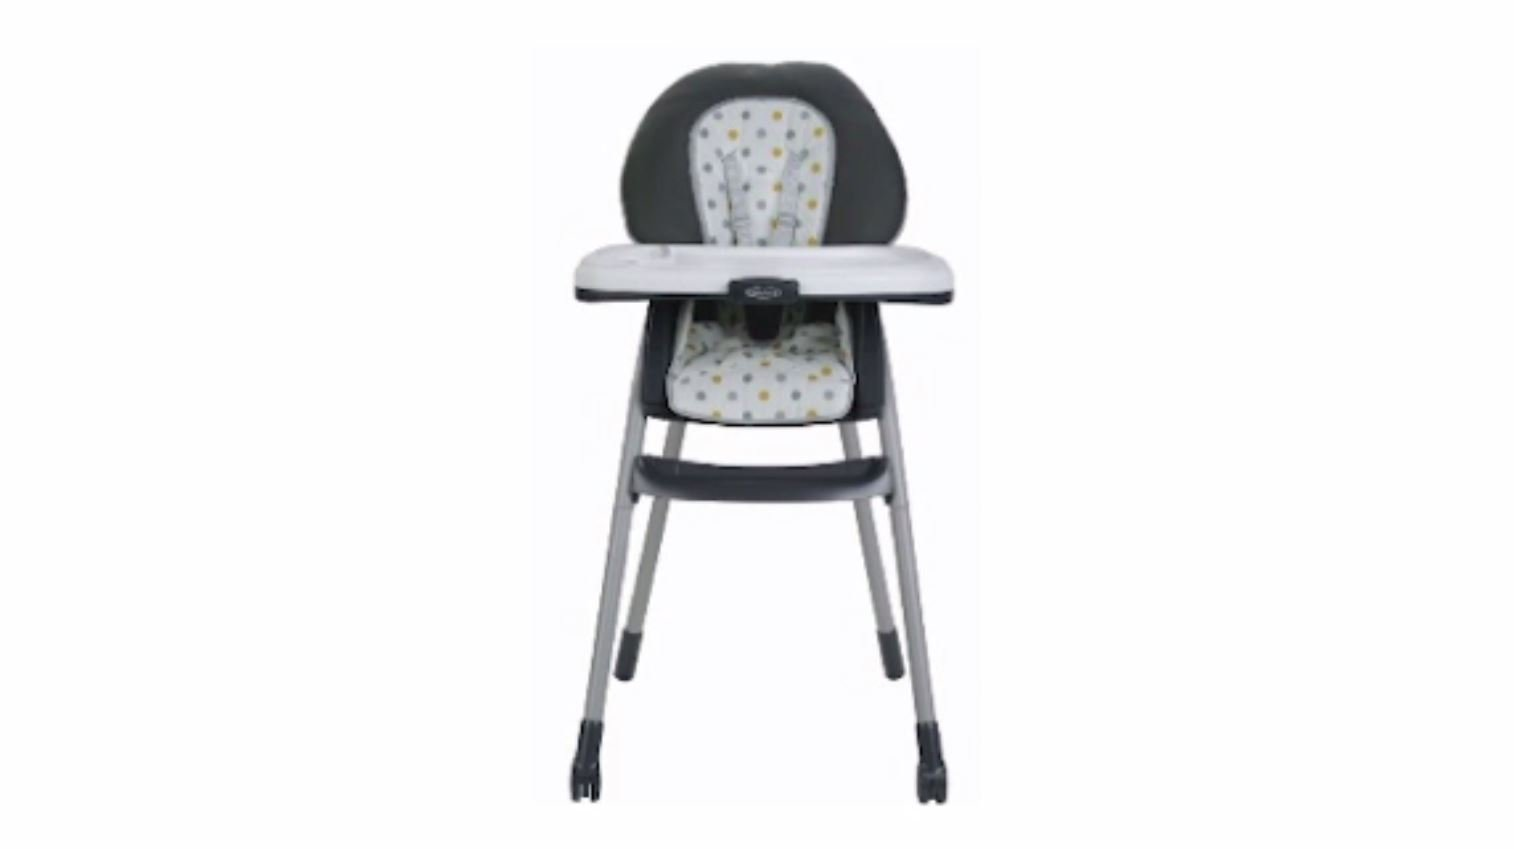 Graco is recalling its Table2Table 6-in-1 high chair because of an issue with one of its rear legs. (Source: Consumer Product Safety Commission/CNN)